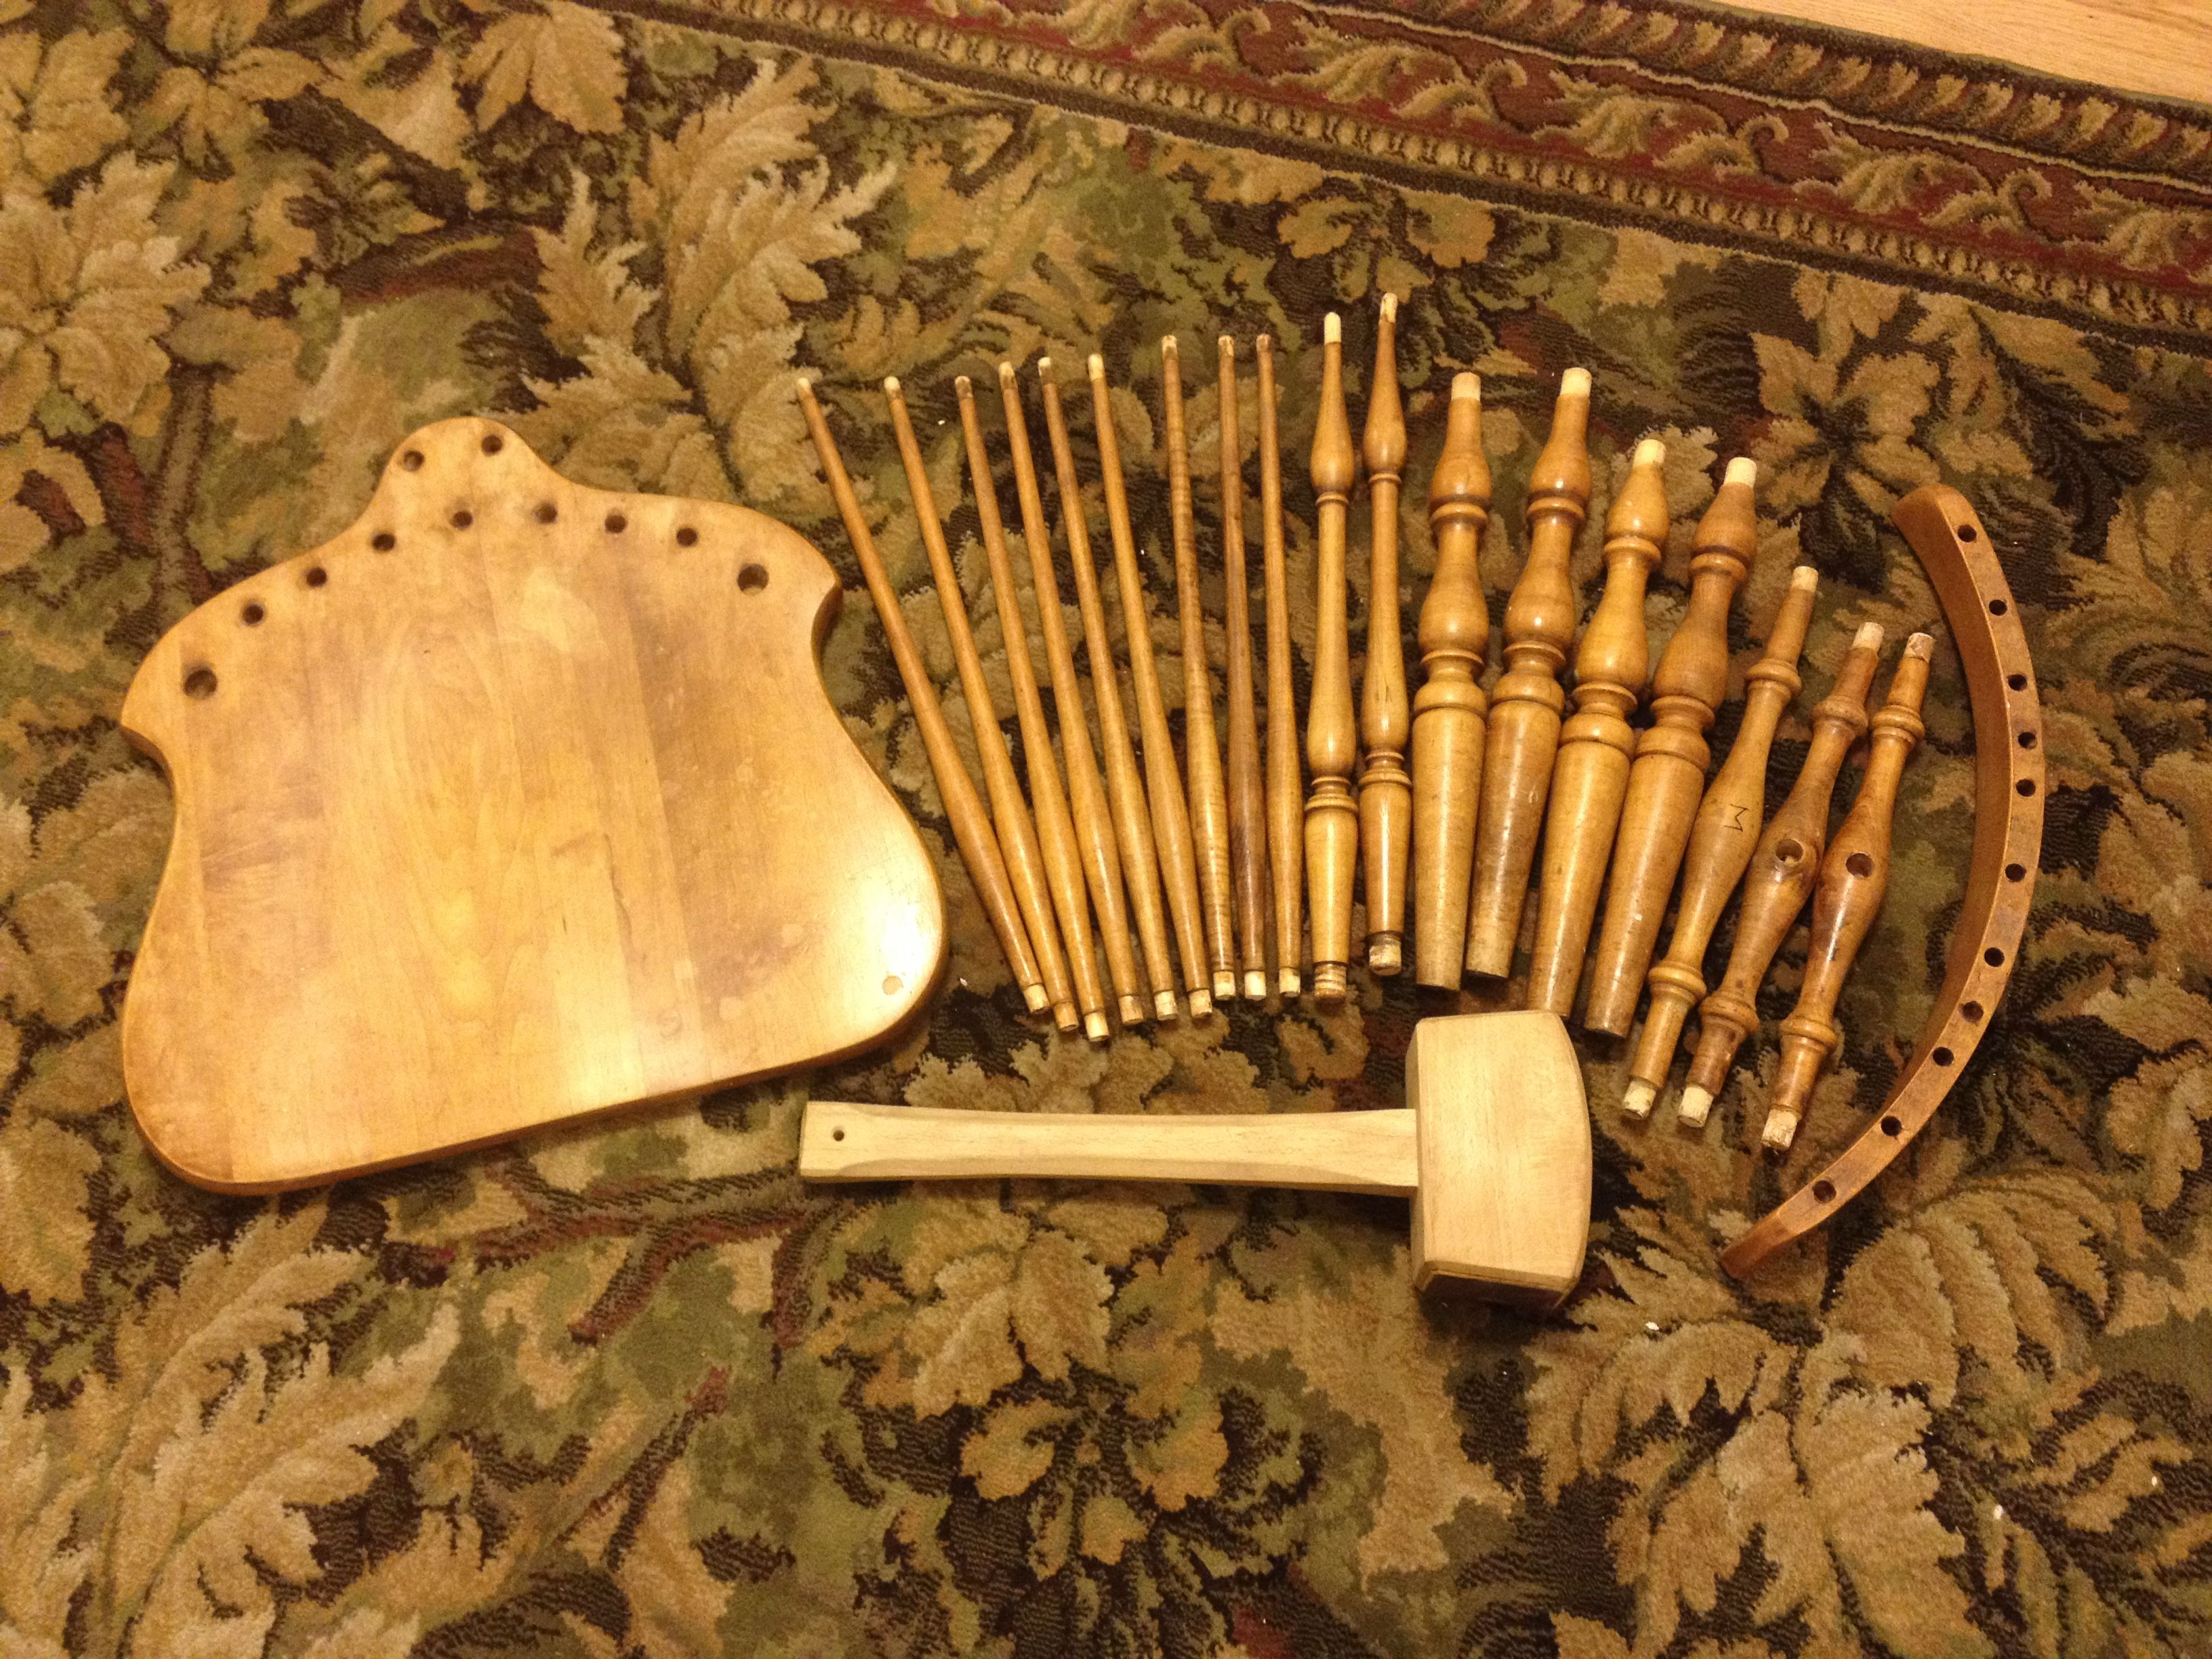 windsor chair kits used barber chairs now available everywhere the christian tool 03